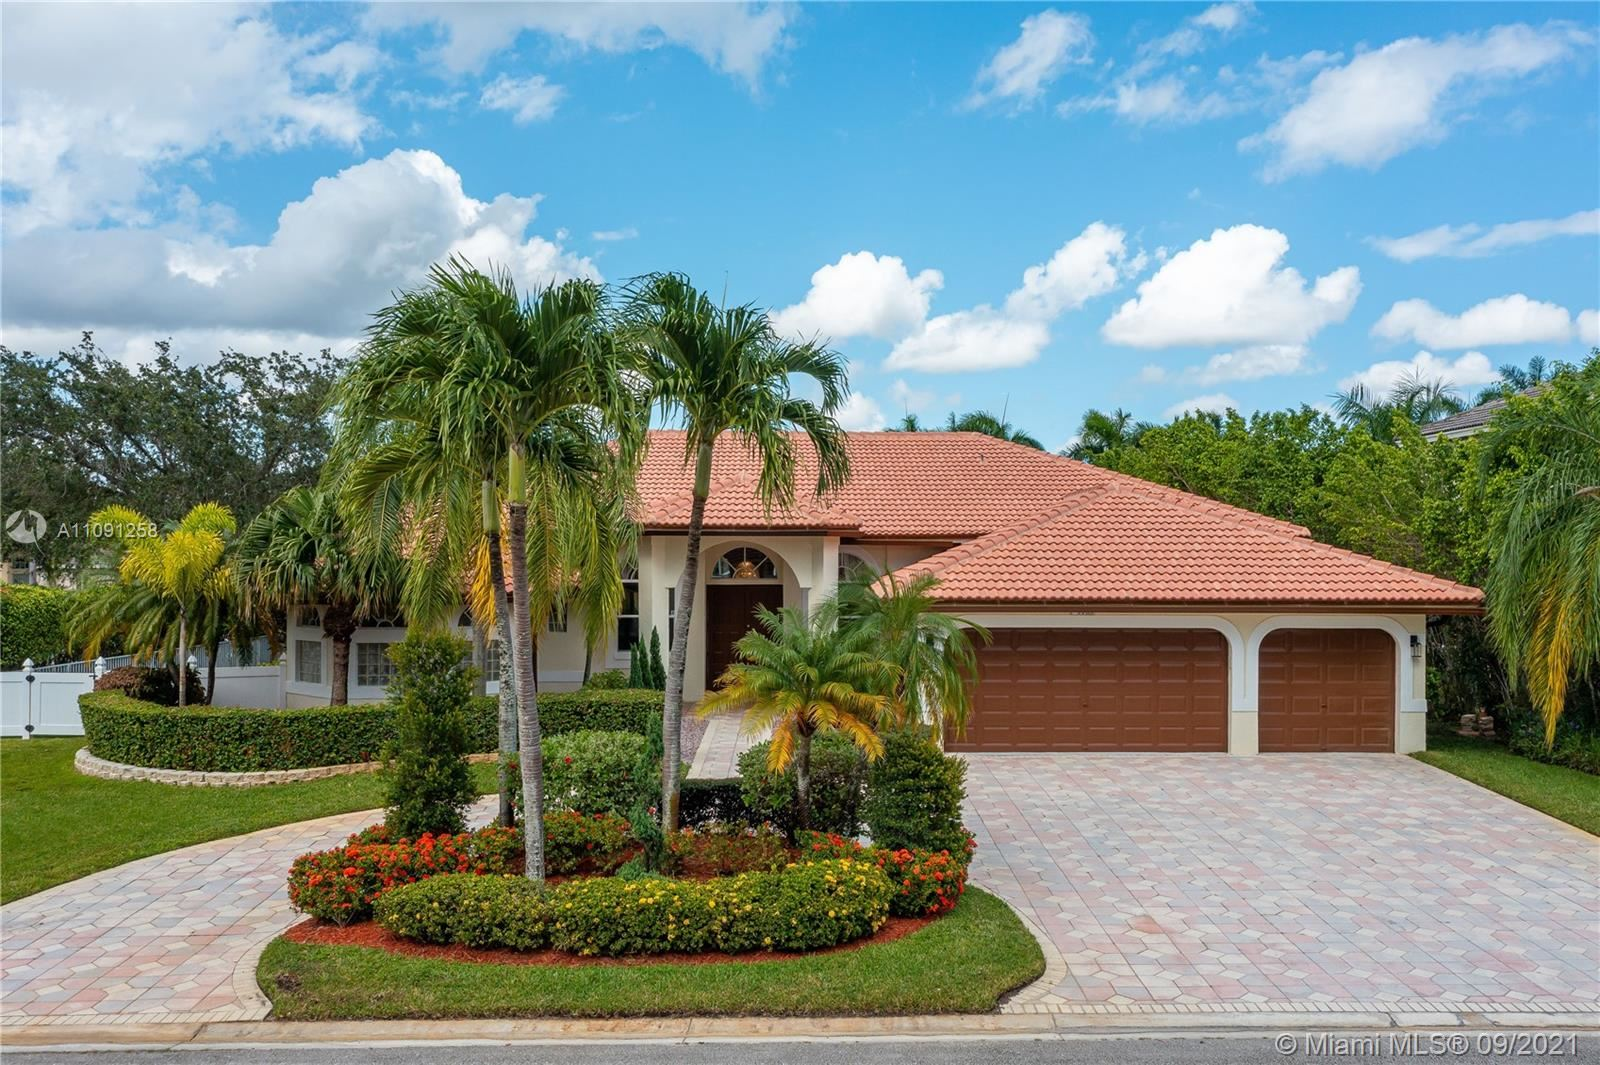 1189 NW 118th Way, Coral Springs, FL 33071 - #: A11091258